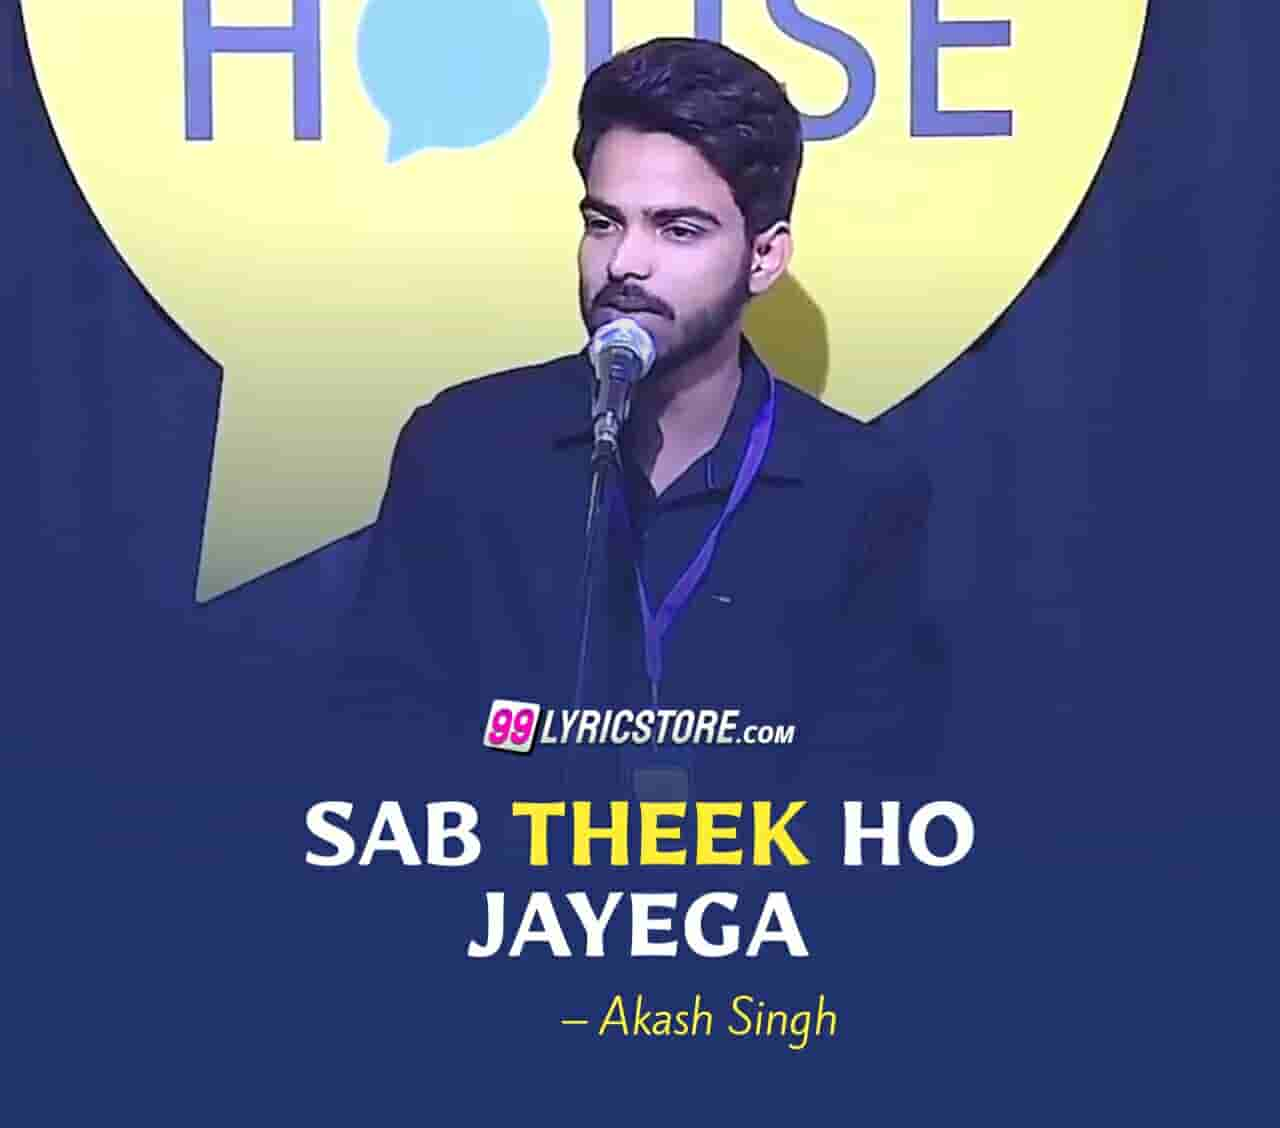 This beautiful Poetry base on 'Breakup' ( Move On) has written and performed by Akash Singh on The Social House's Plateform.